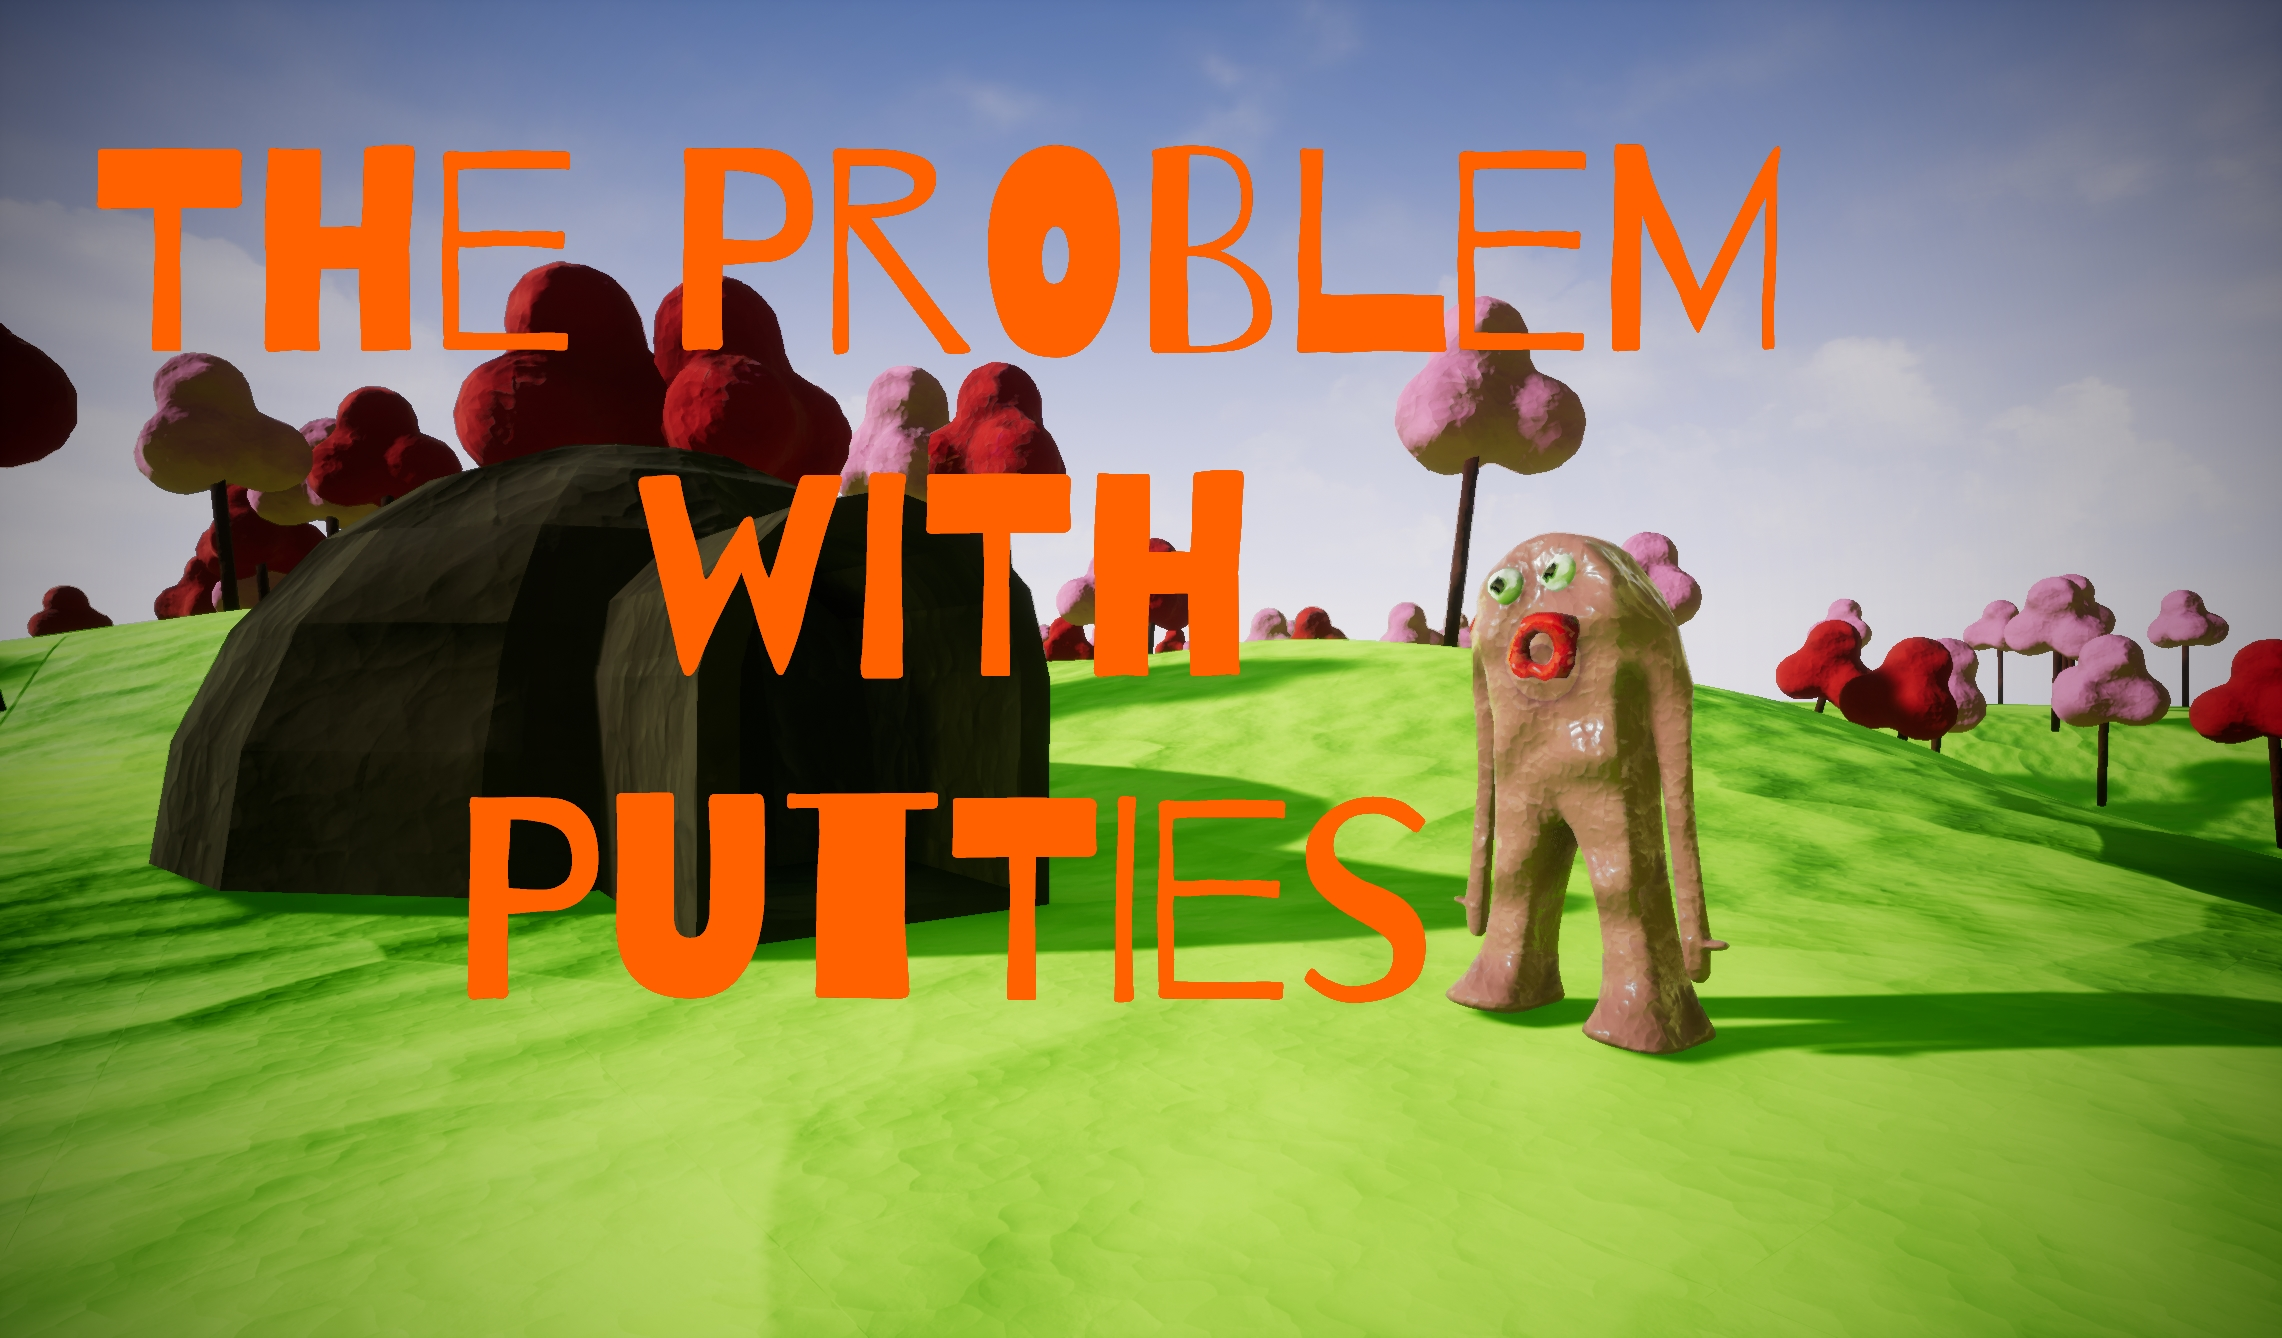 The Problem with Putties